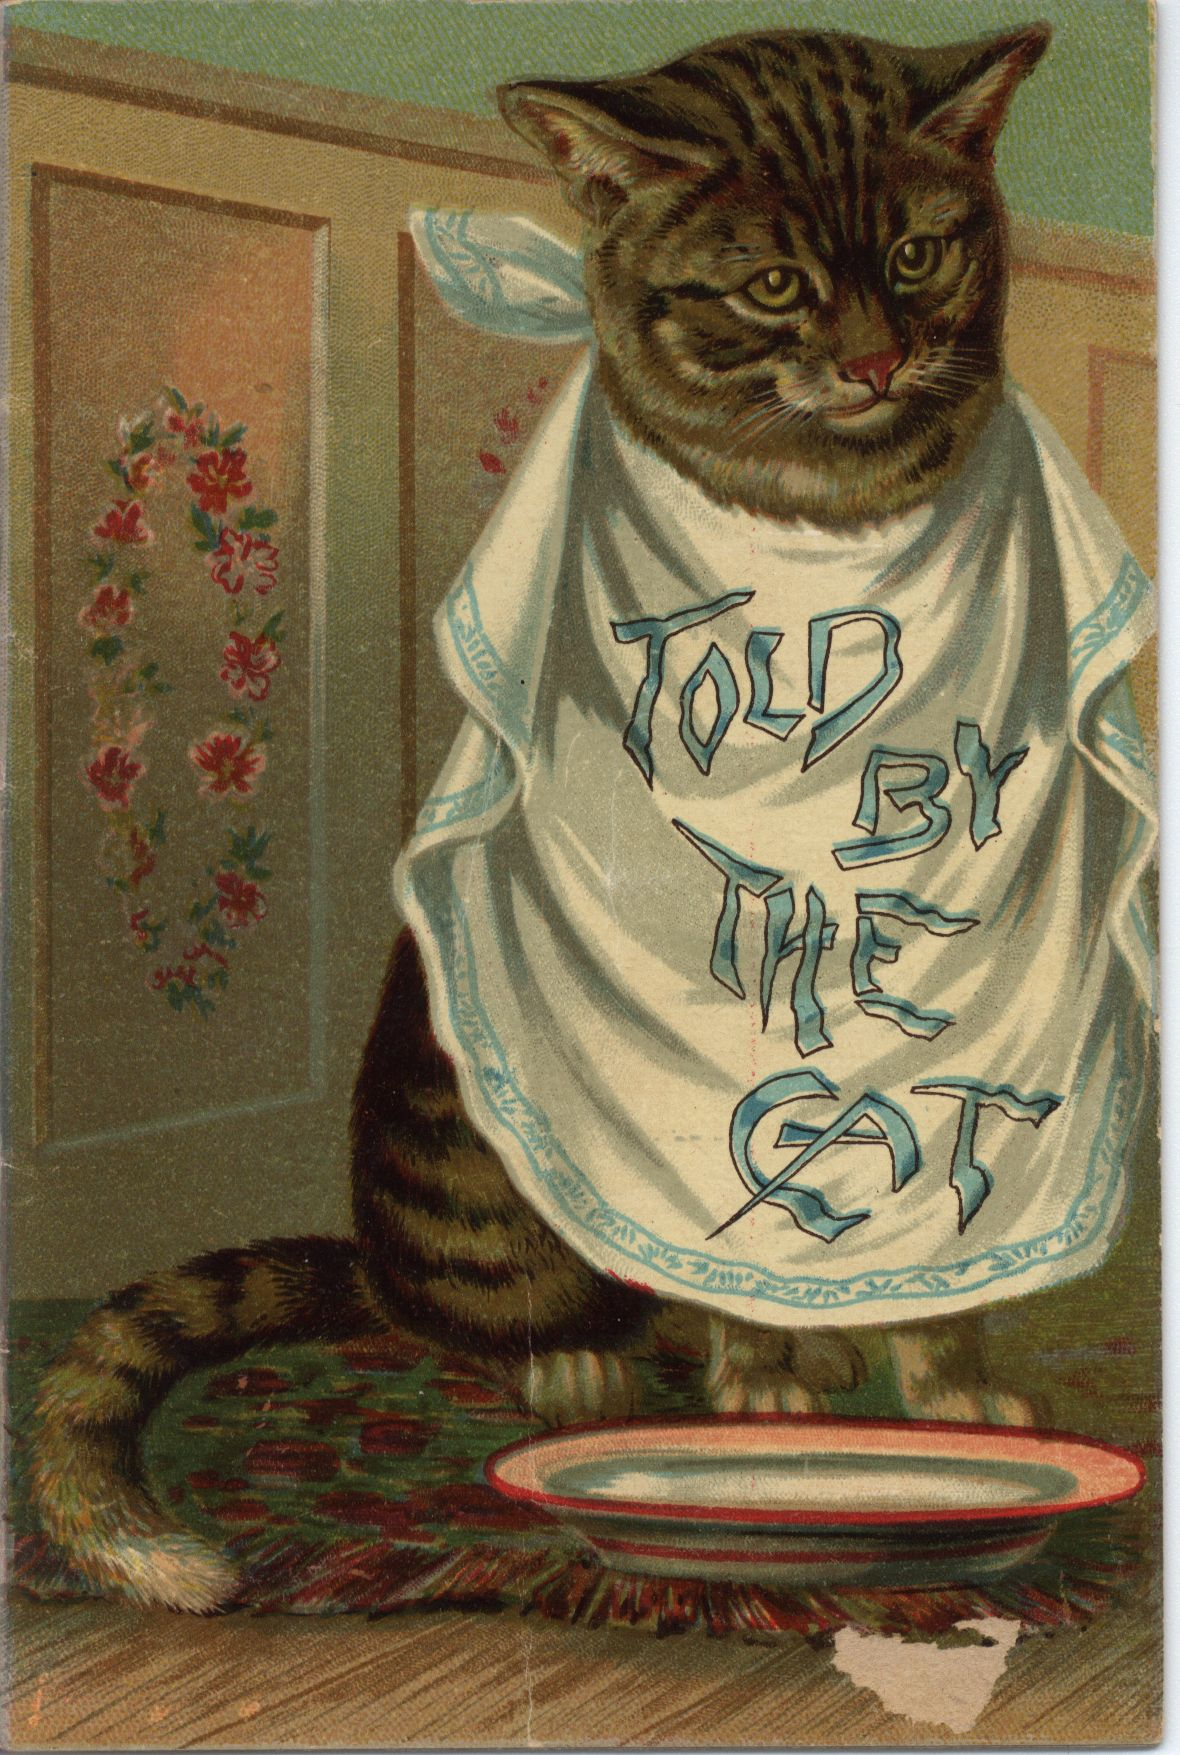 TOLD BY THE CAT